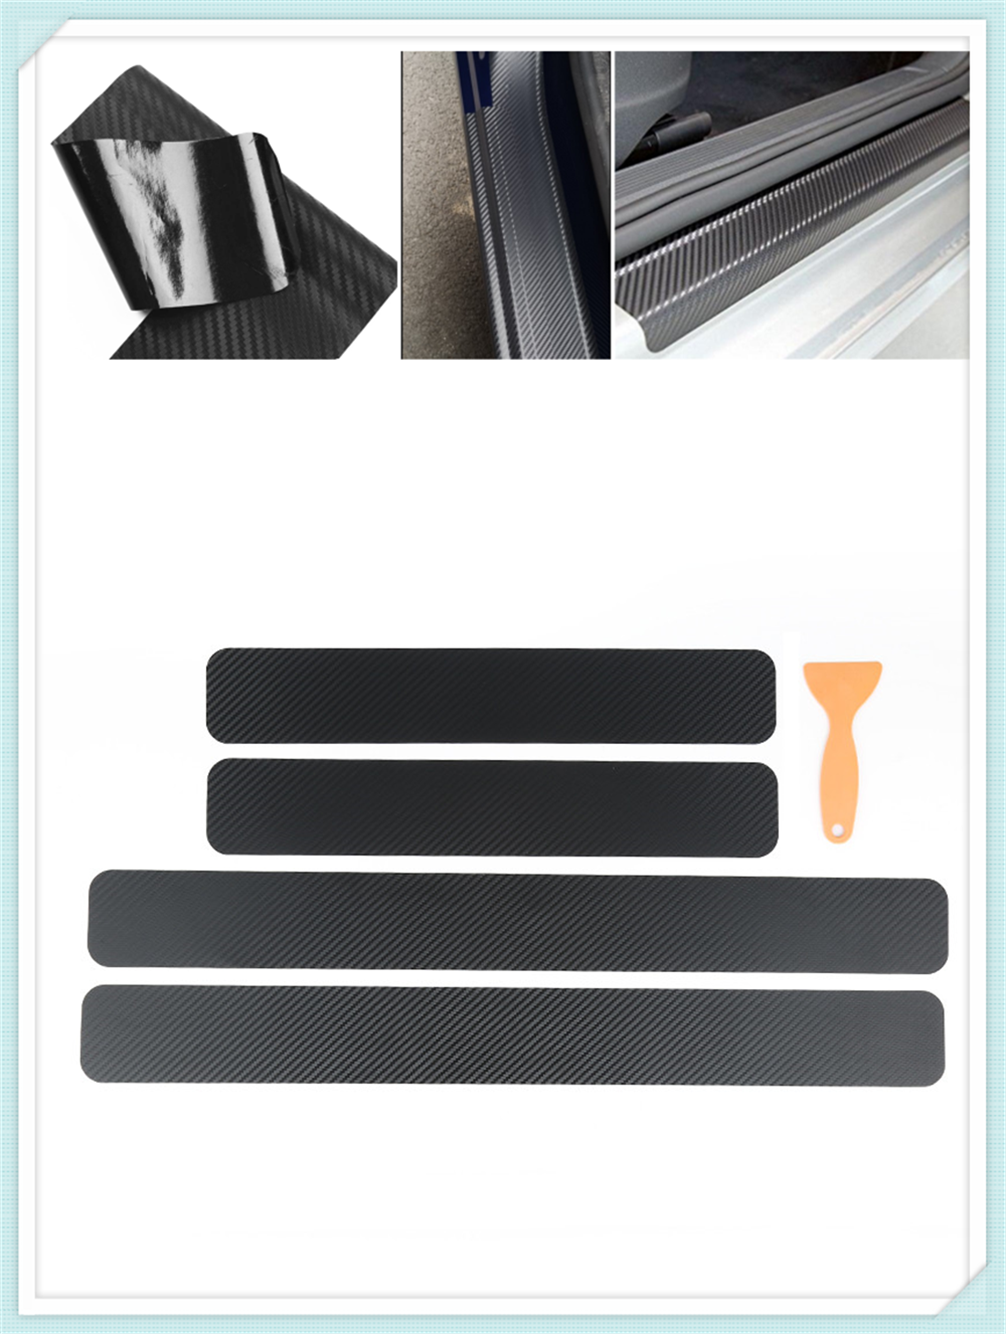 4 pieces of car shape carbon fiber door edge scratch protection film for Nissan NV200 Nuvu NV2500 Forum Denki 350Z Zaroot image